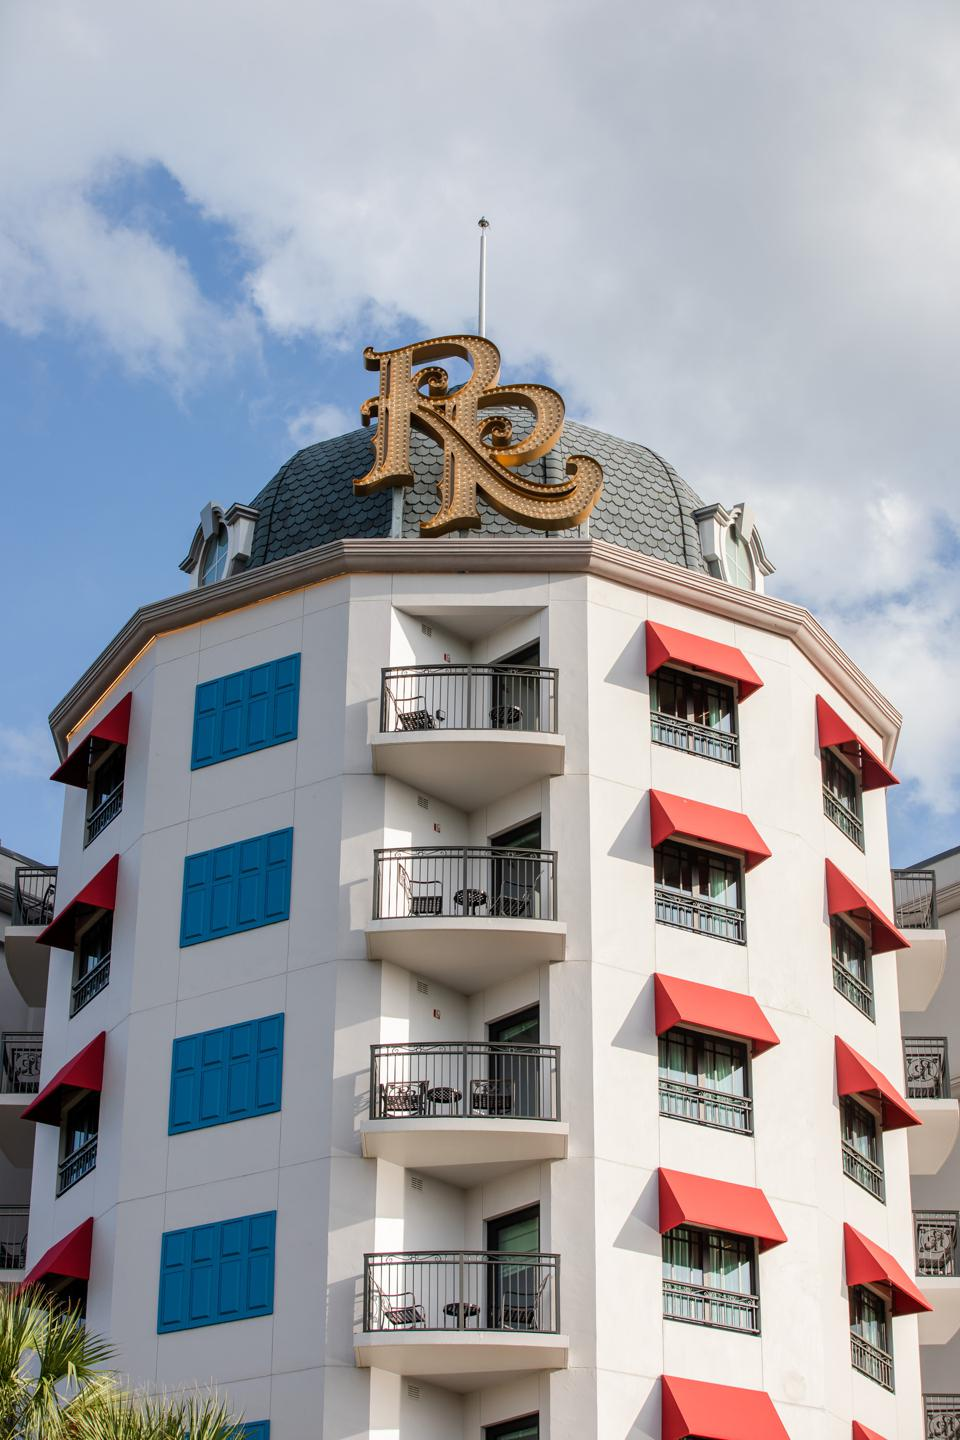 Two inter-locking letter Rs adorn the Riviera Resort's cupola echoing some of the most stately hotels in Europe